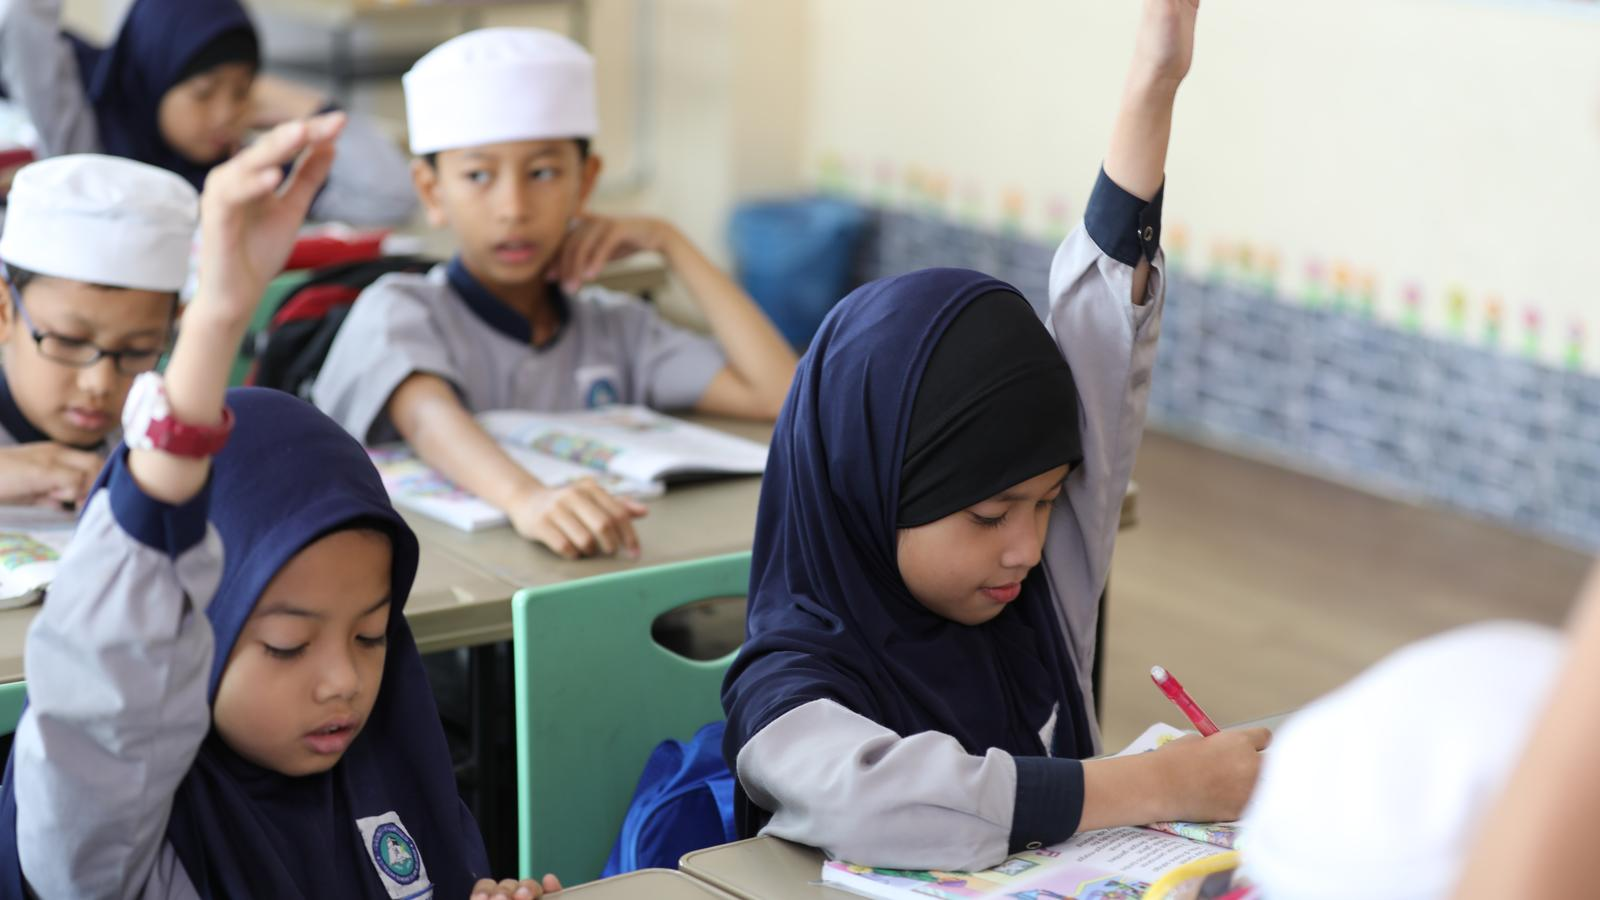 A child raises her hand in her classroom